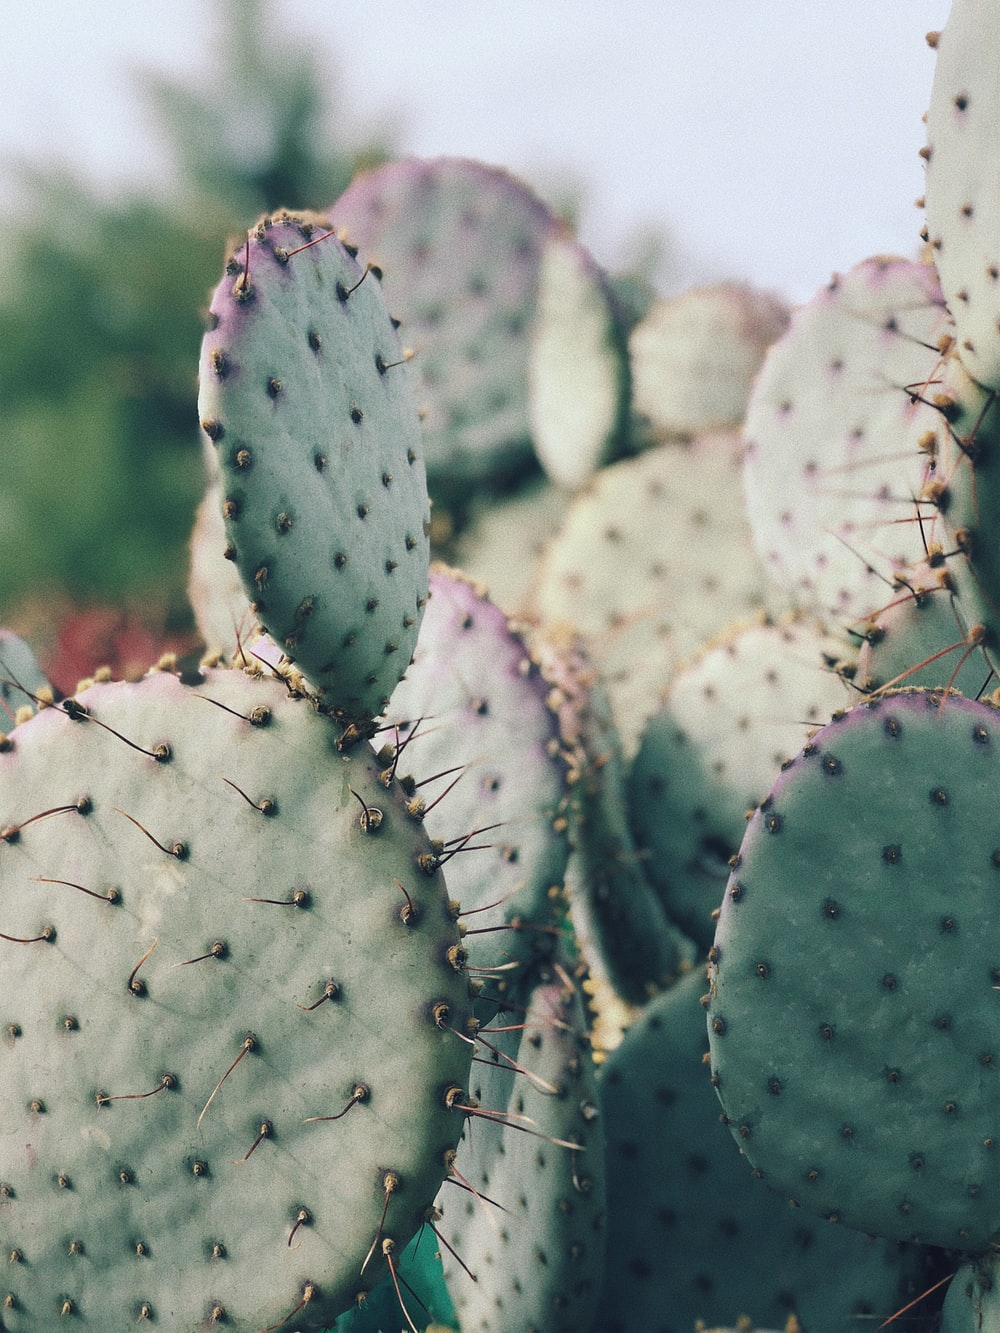 green cactus plants close-up photography